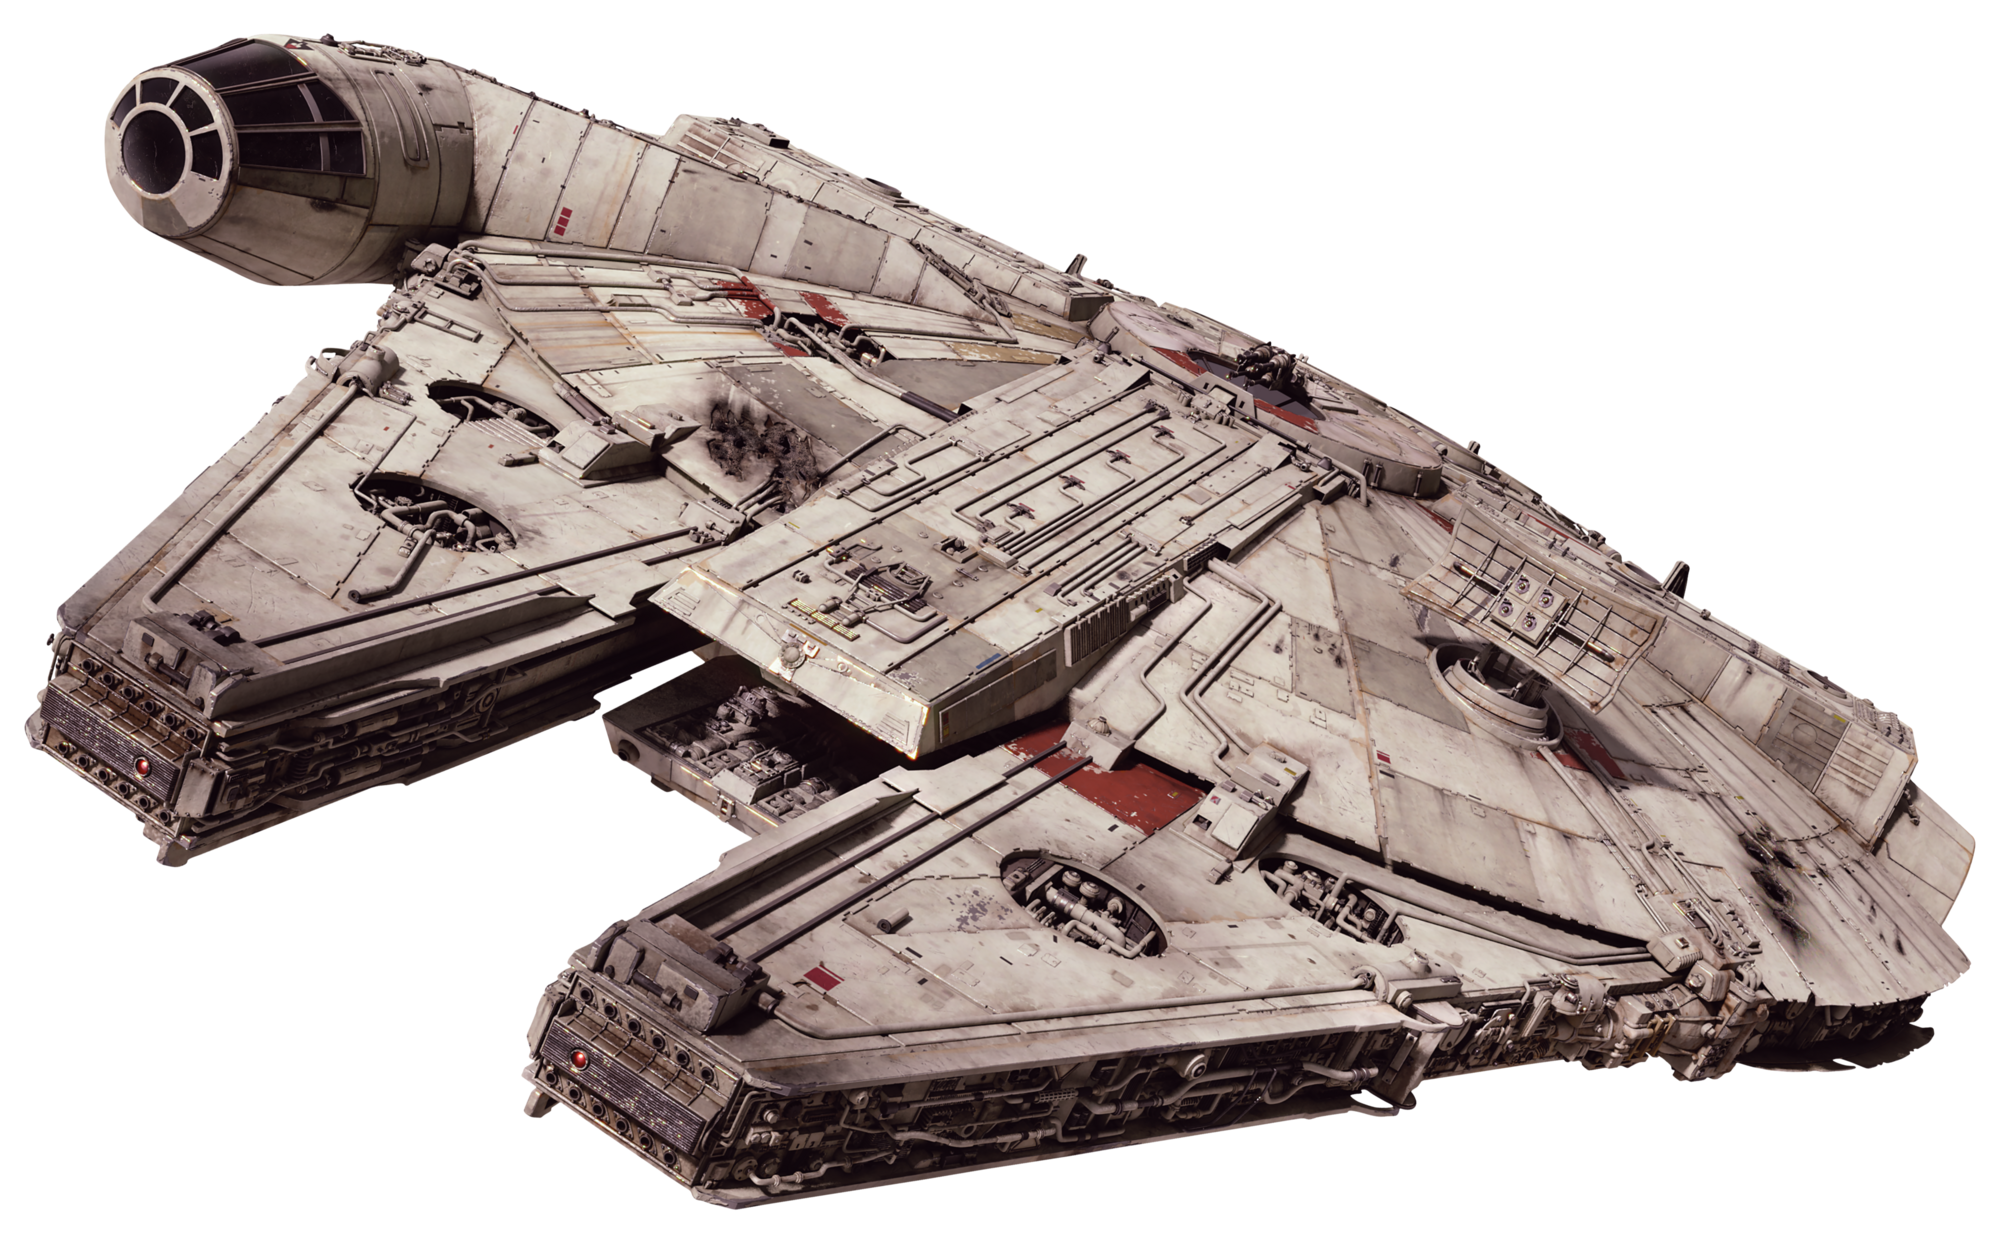 Millennium Falcon | Wookieepedia | FANDOM powered by Wikia